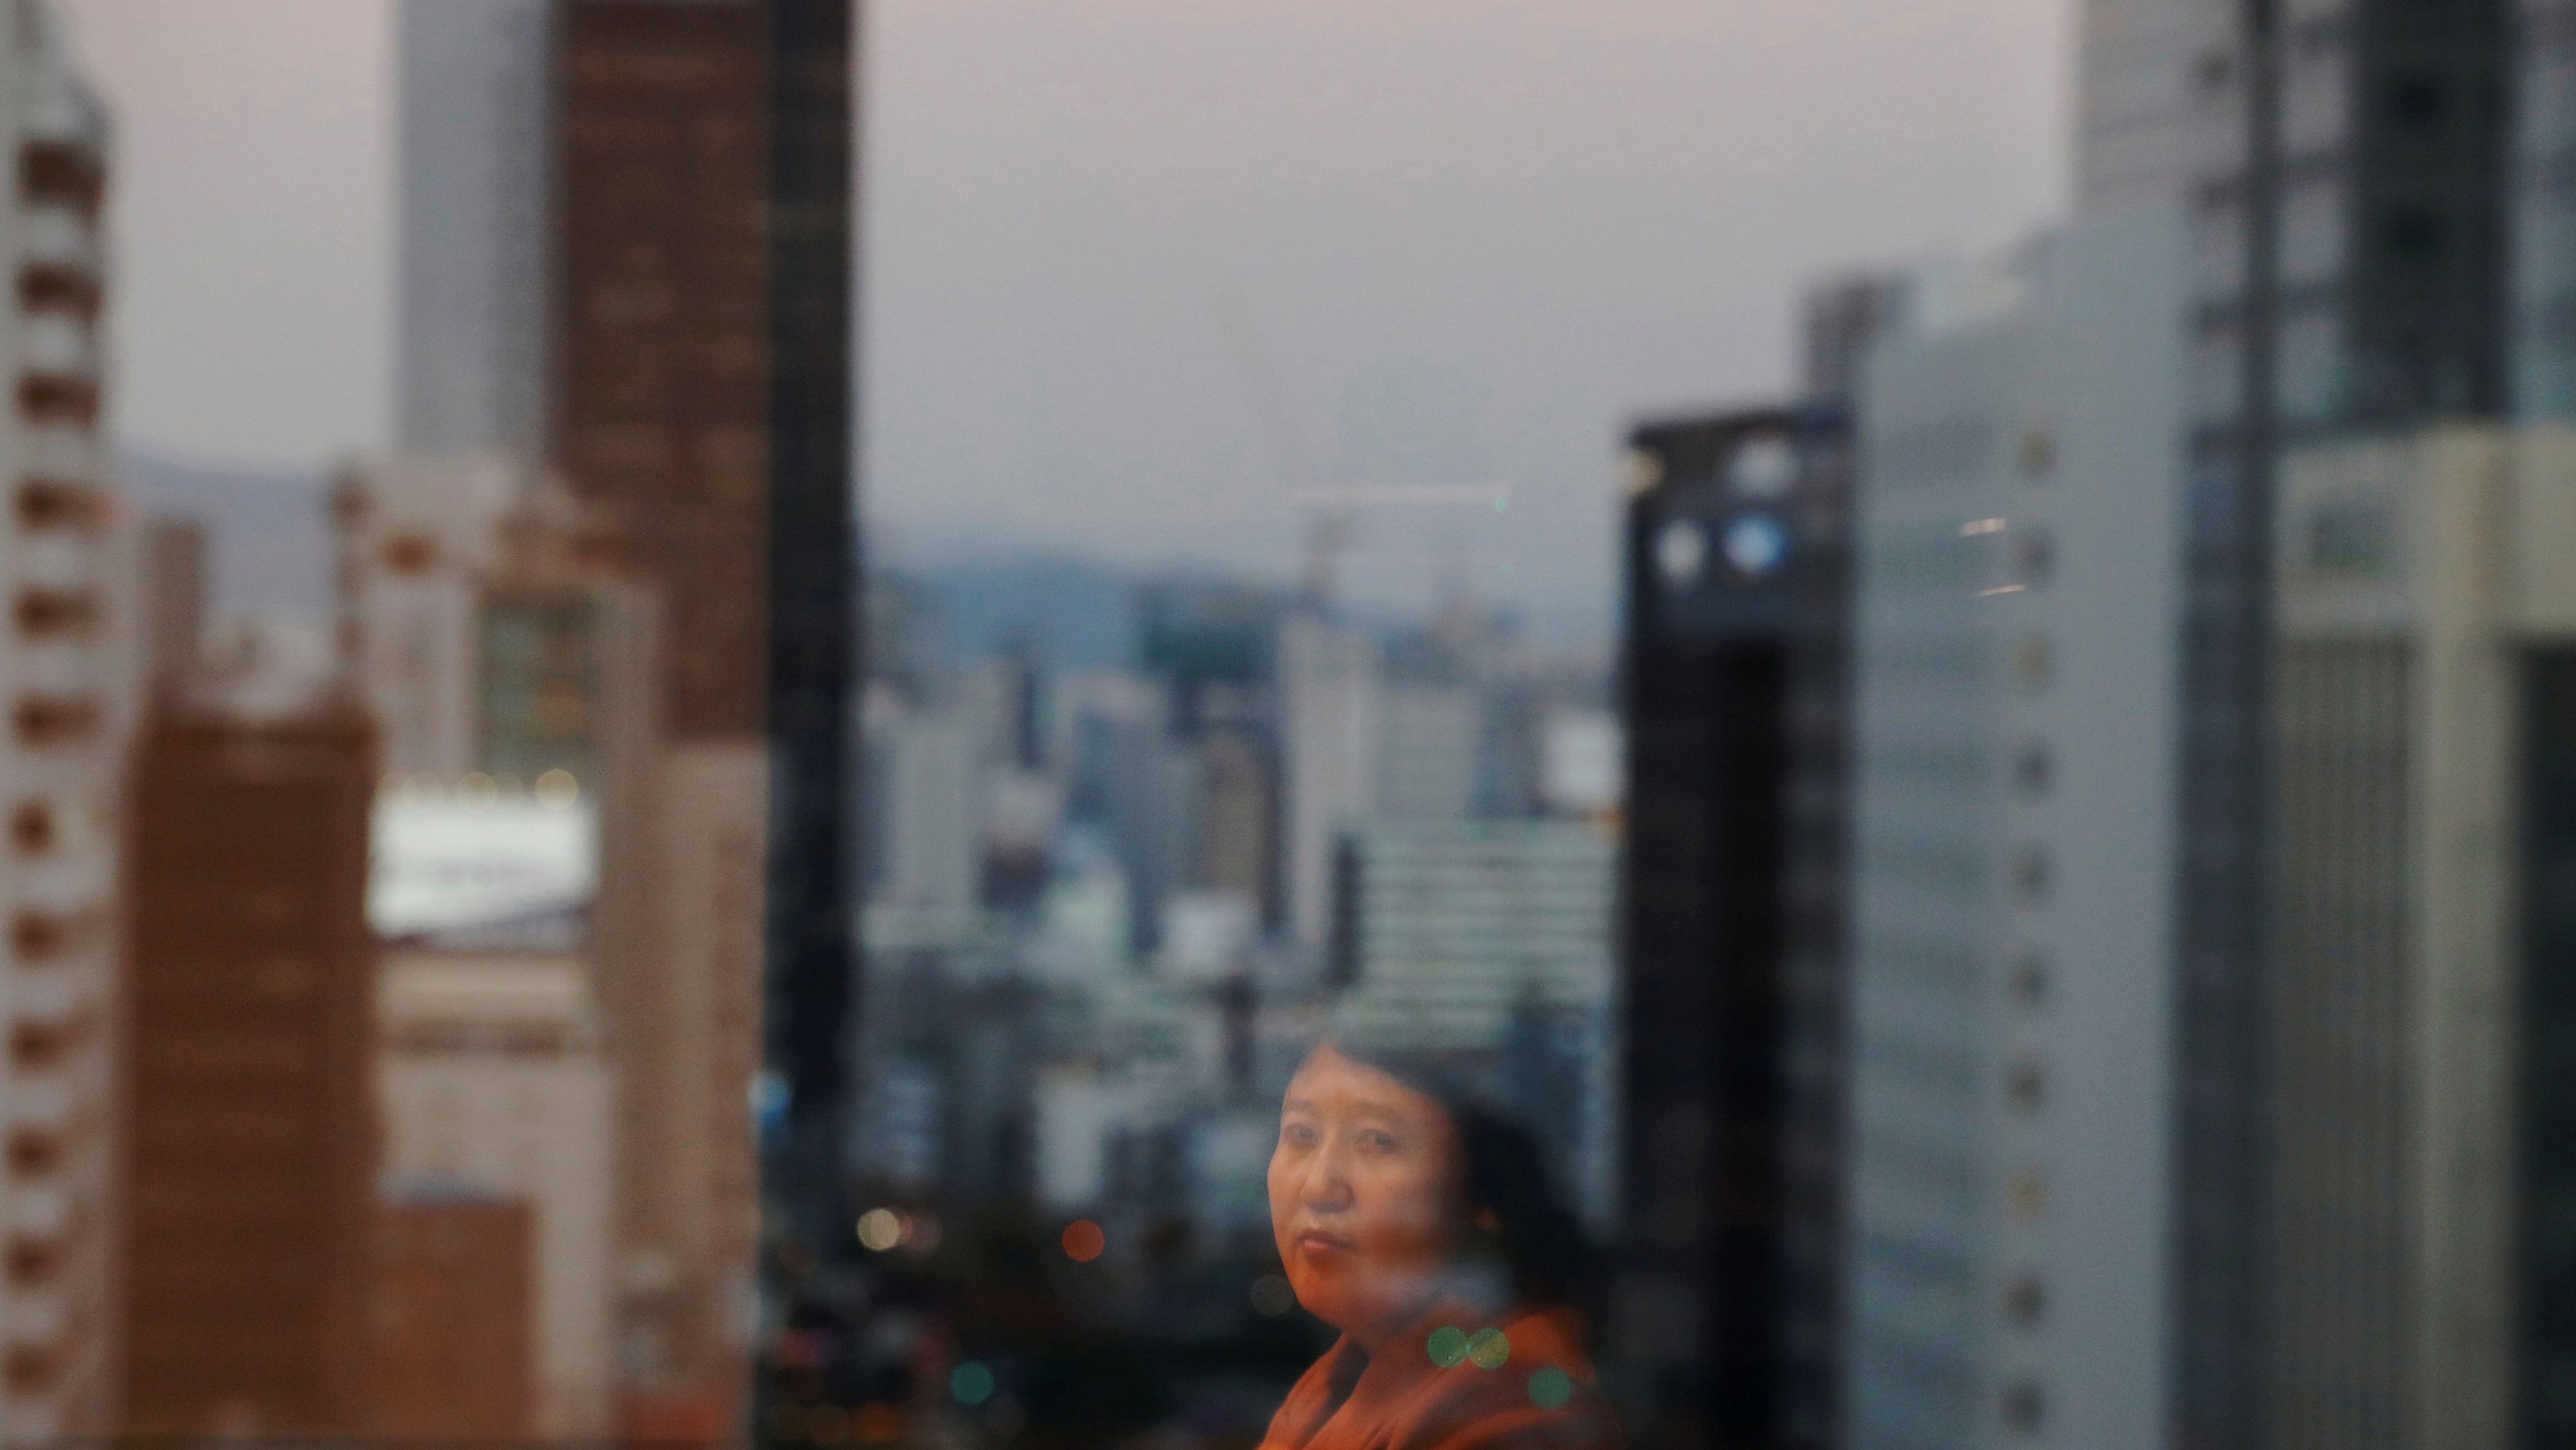 """A North Korean defector in Seoul. """"The thing I fear the most is finding out they've passed away before I have the chance to go back,"""" she said."""